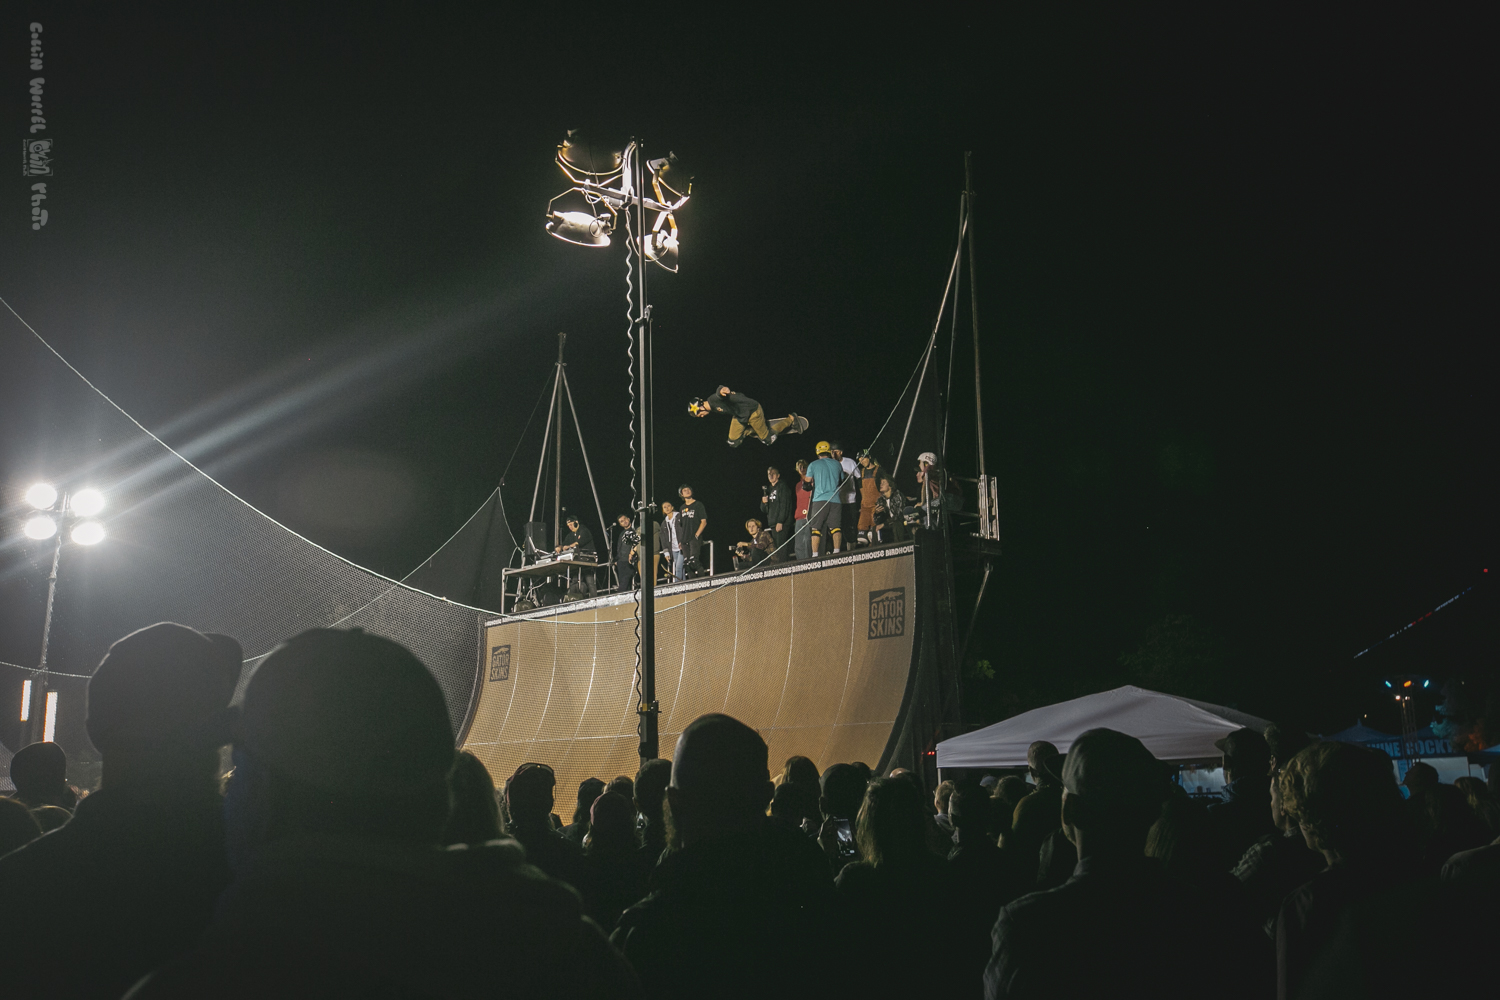 Tony Hawk's Half Pipe at Wonderfront Festival 2019 by Collin Worrel for ListenSD